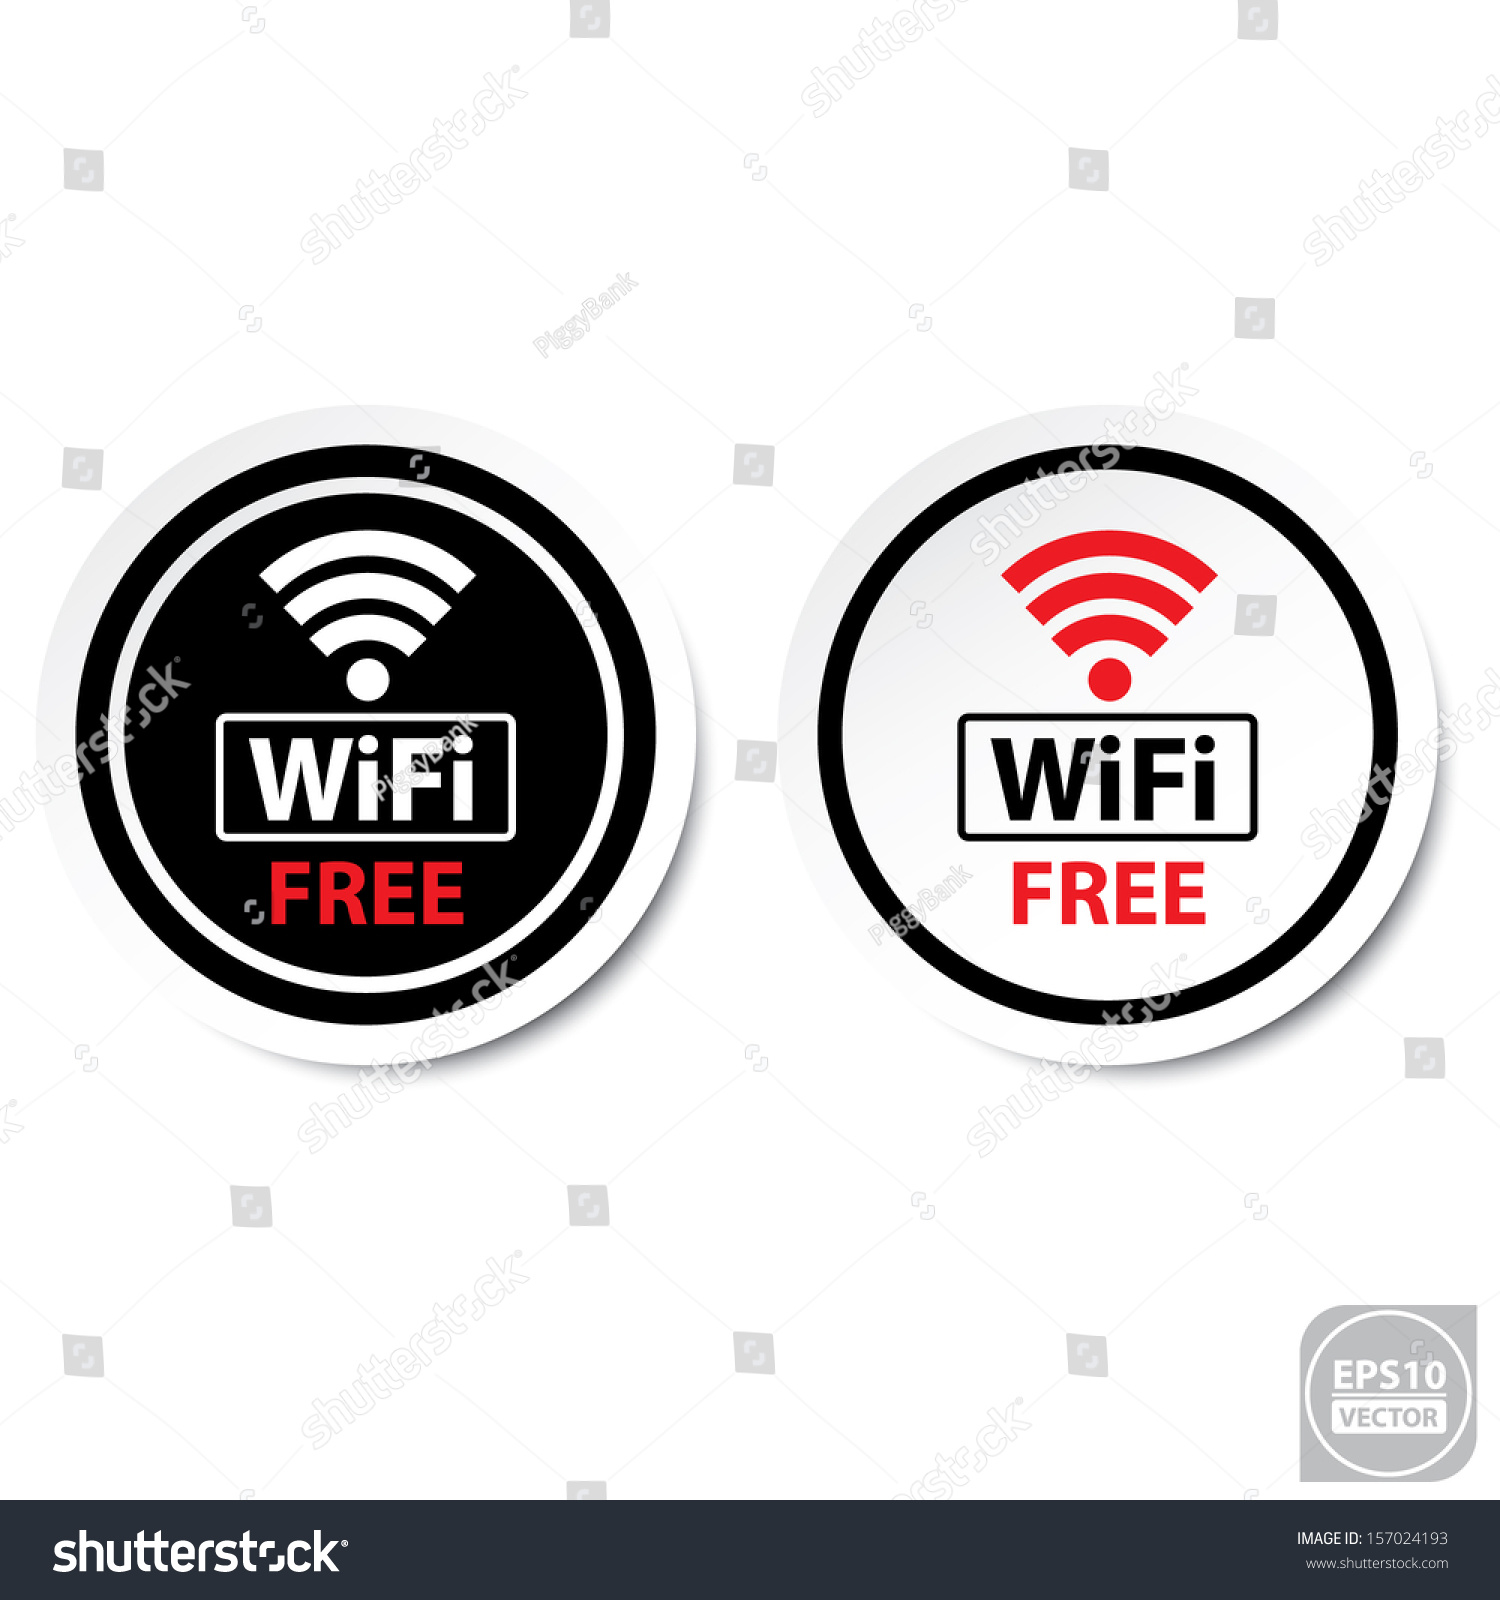 Vector Black White Wifi Free Icons Stock Vector (Royalty